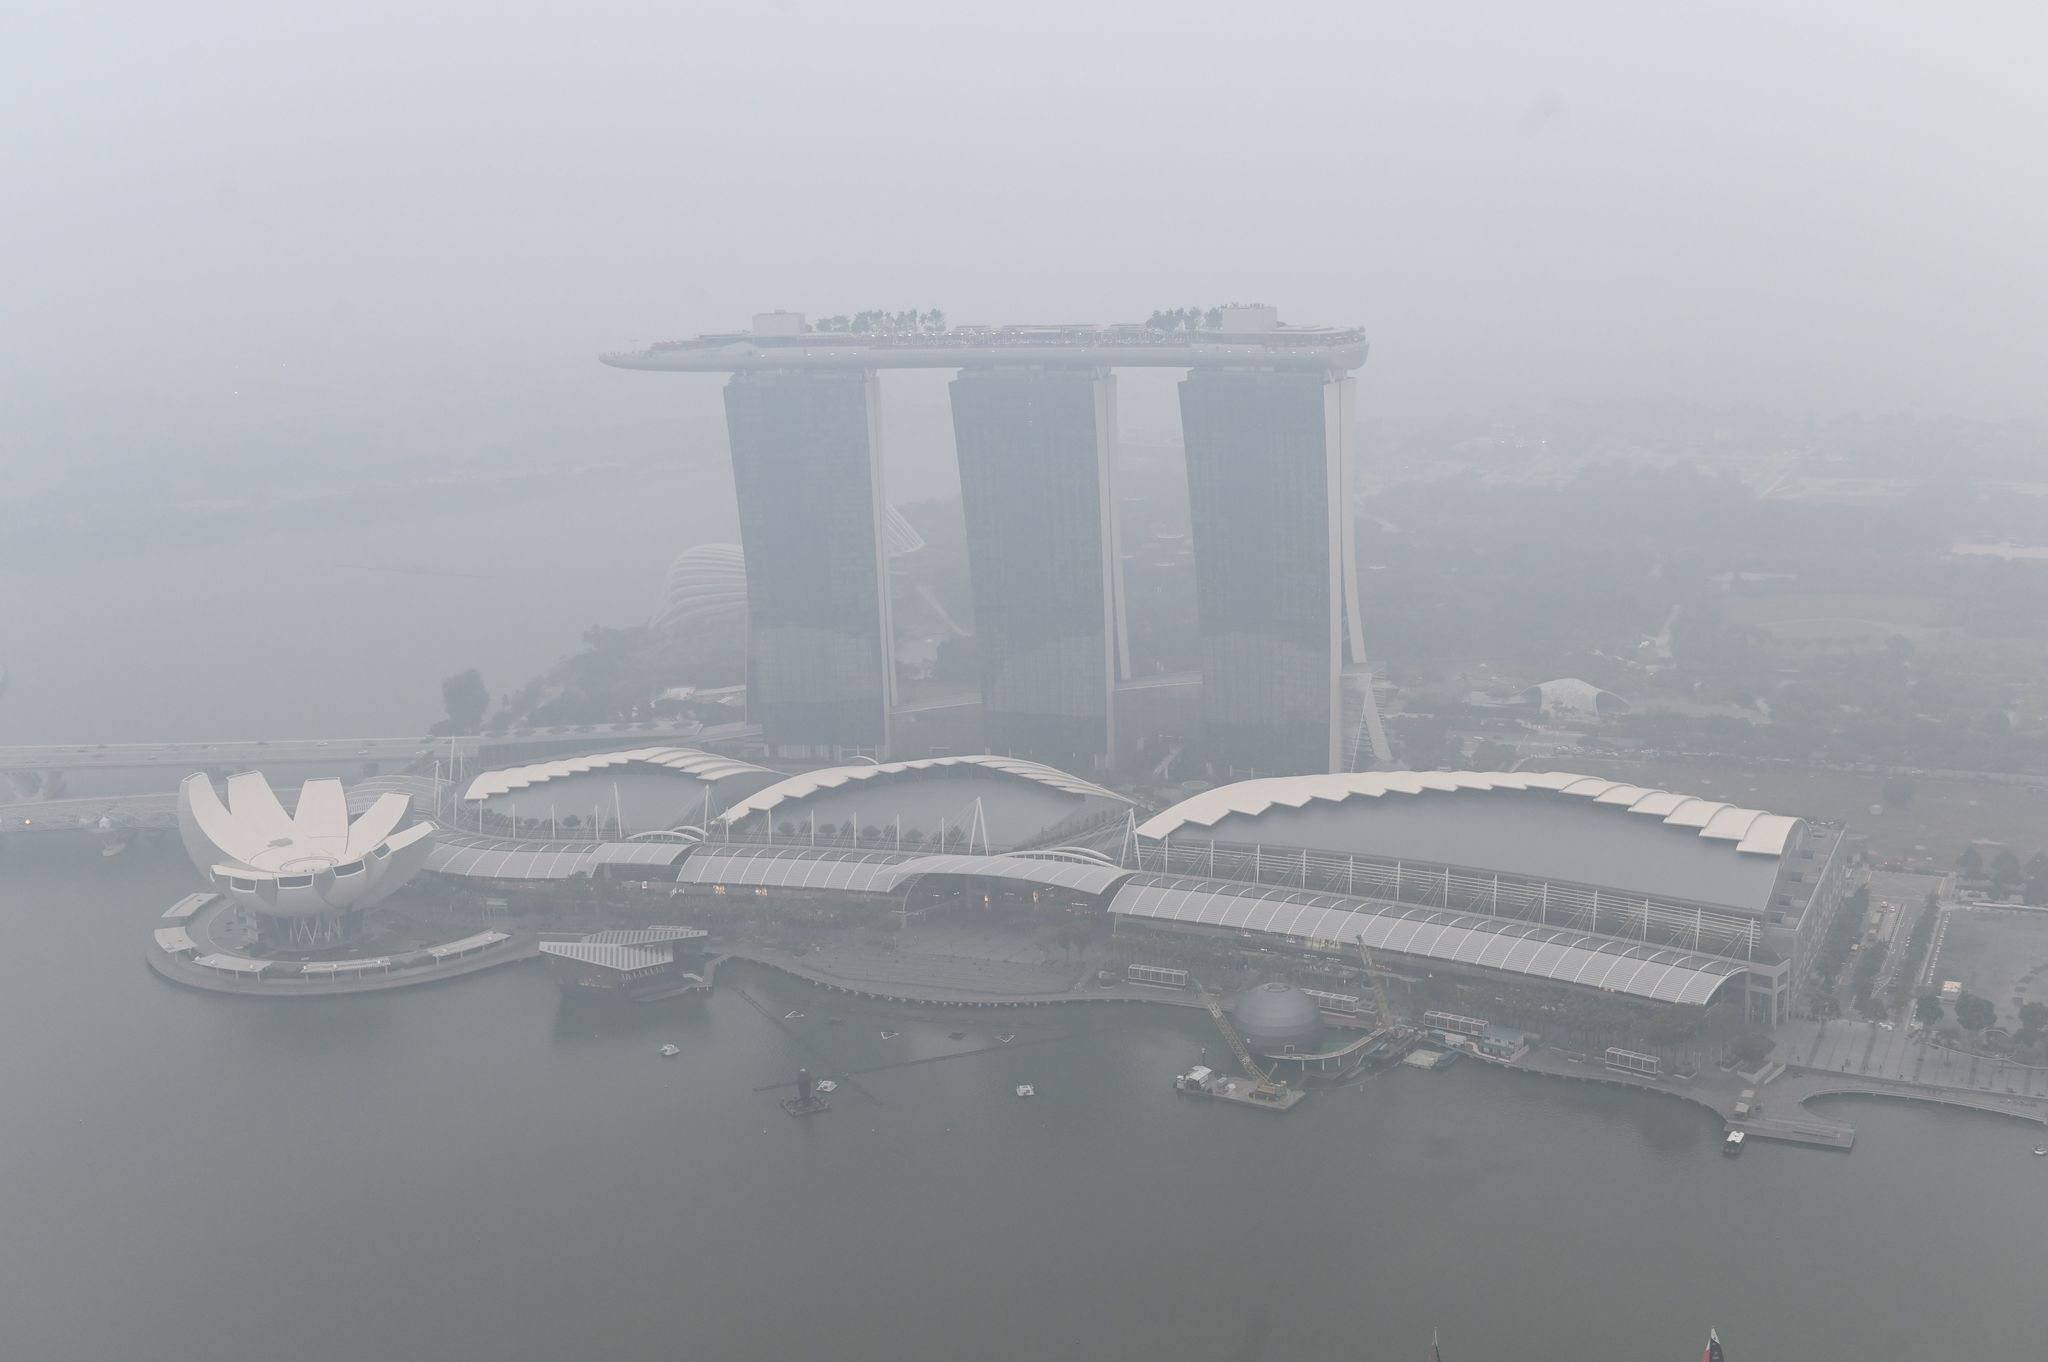 TOPSHOT - This overview shows the Marina Bay Sands hotel and resort blanketed by haze in <HIT>Singapore</HIT> on September 18, 2019. - Toxic haze from Indonesian forest fires closed thousands of schools across the country and in neighbouring Malaysia on September 18, while air quality worsened in <HIT>Singapore</HIT> just days before the city's Formula One motor race. (Photo by Roslan RAHMAN / AFP)